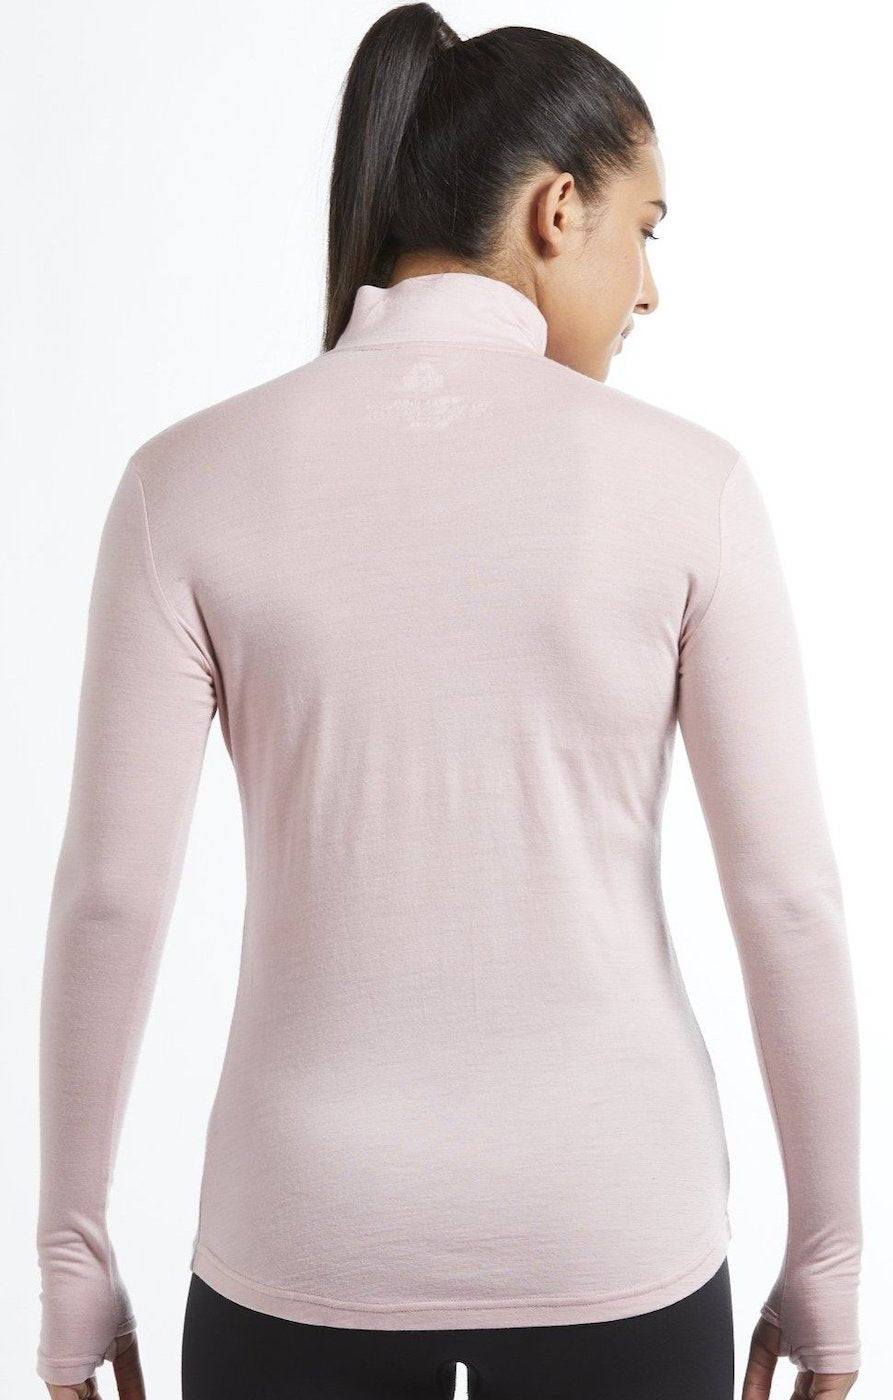 Womens merino wool Everyday quarter zip top